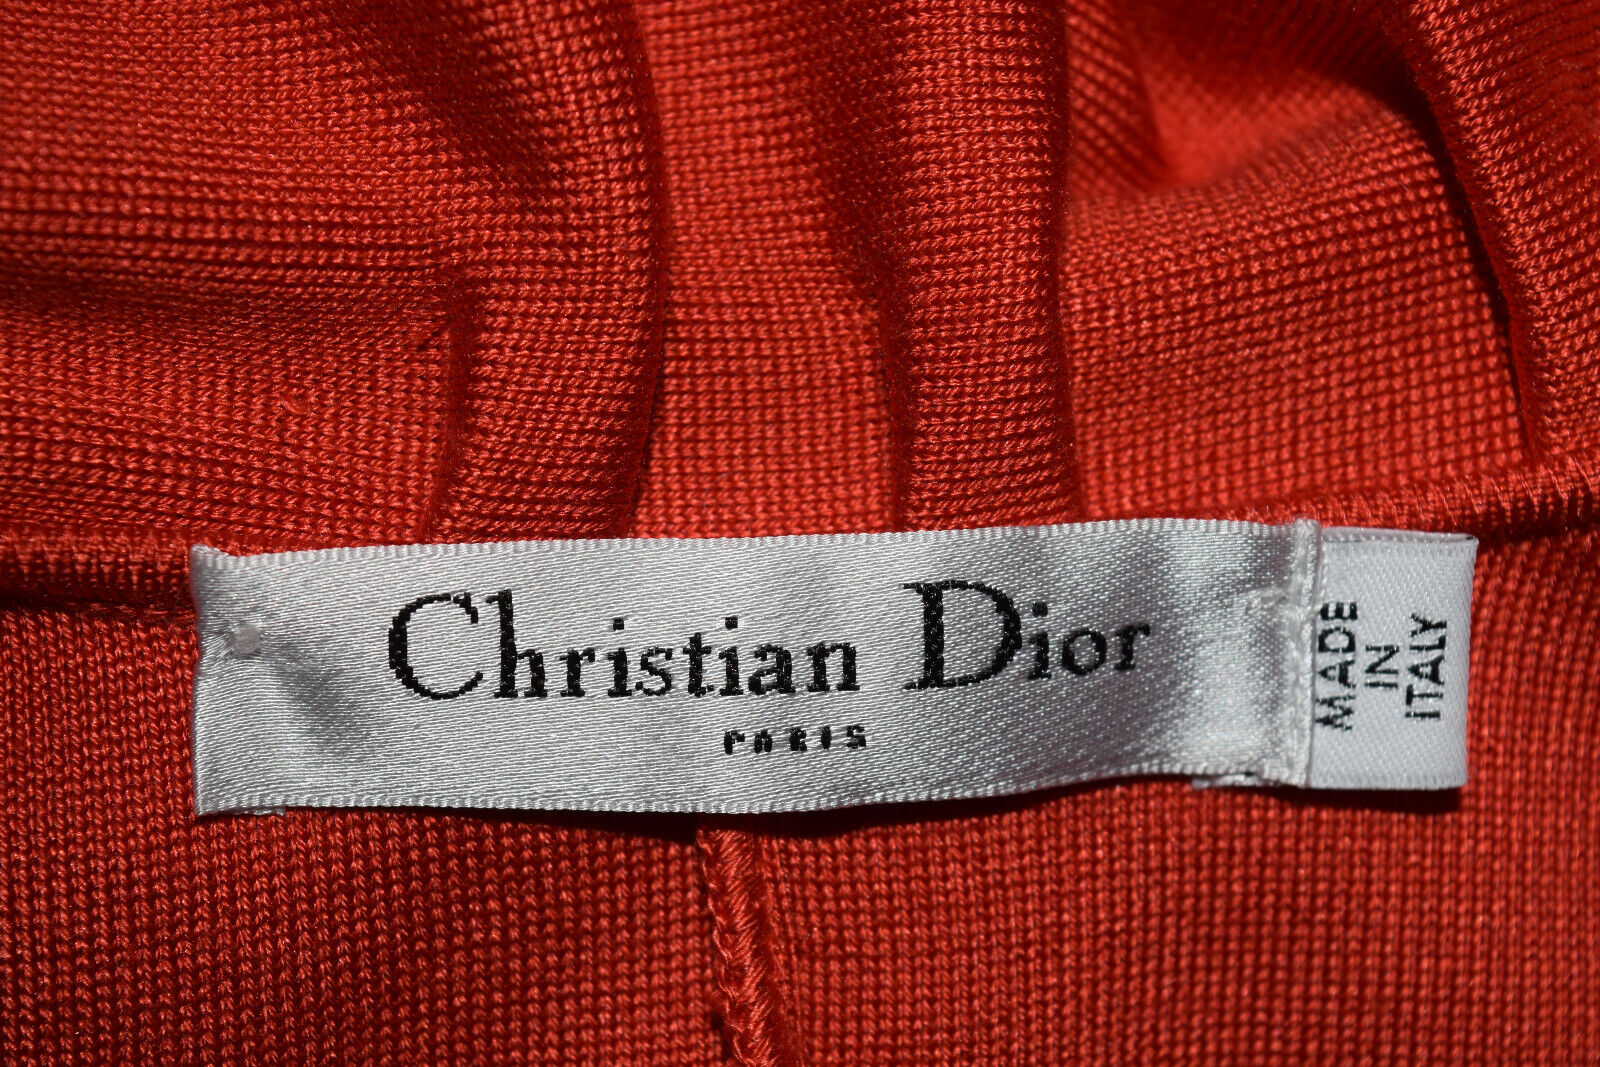 Christian dior tricot rouge volants col bateau robe sans manches taille 4 1902ko